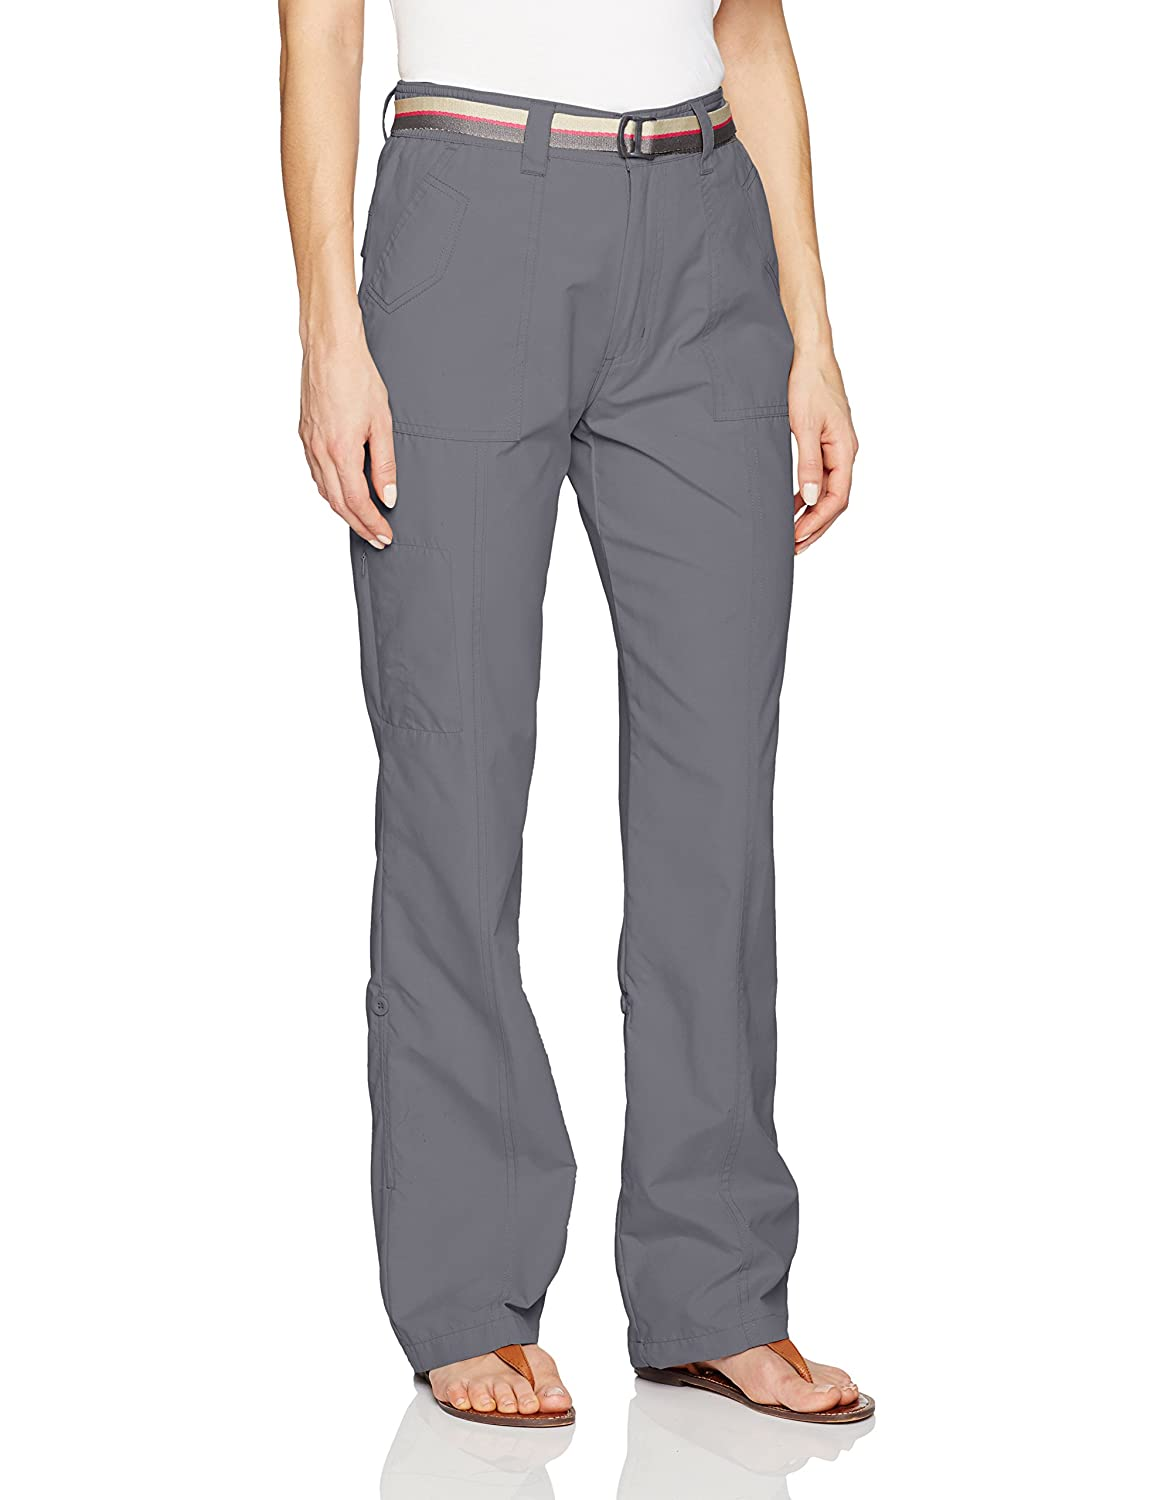 Pacific Trail Pants with Roll Up Cuff M Hidary /& Company Inc. Outdoors